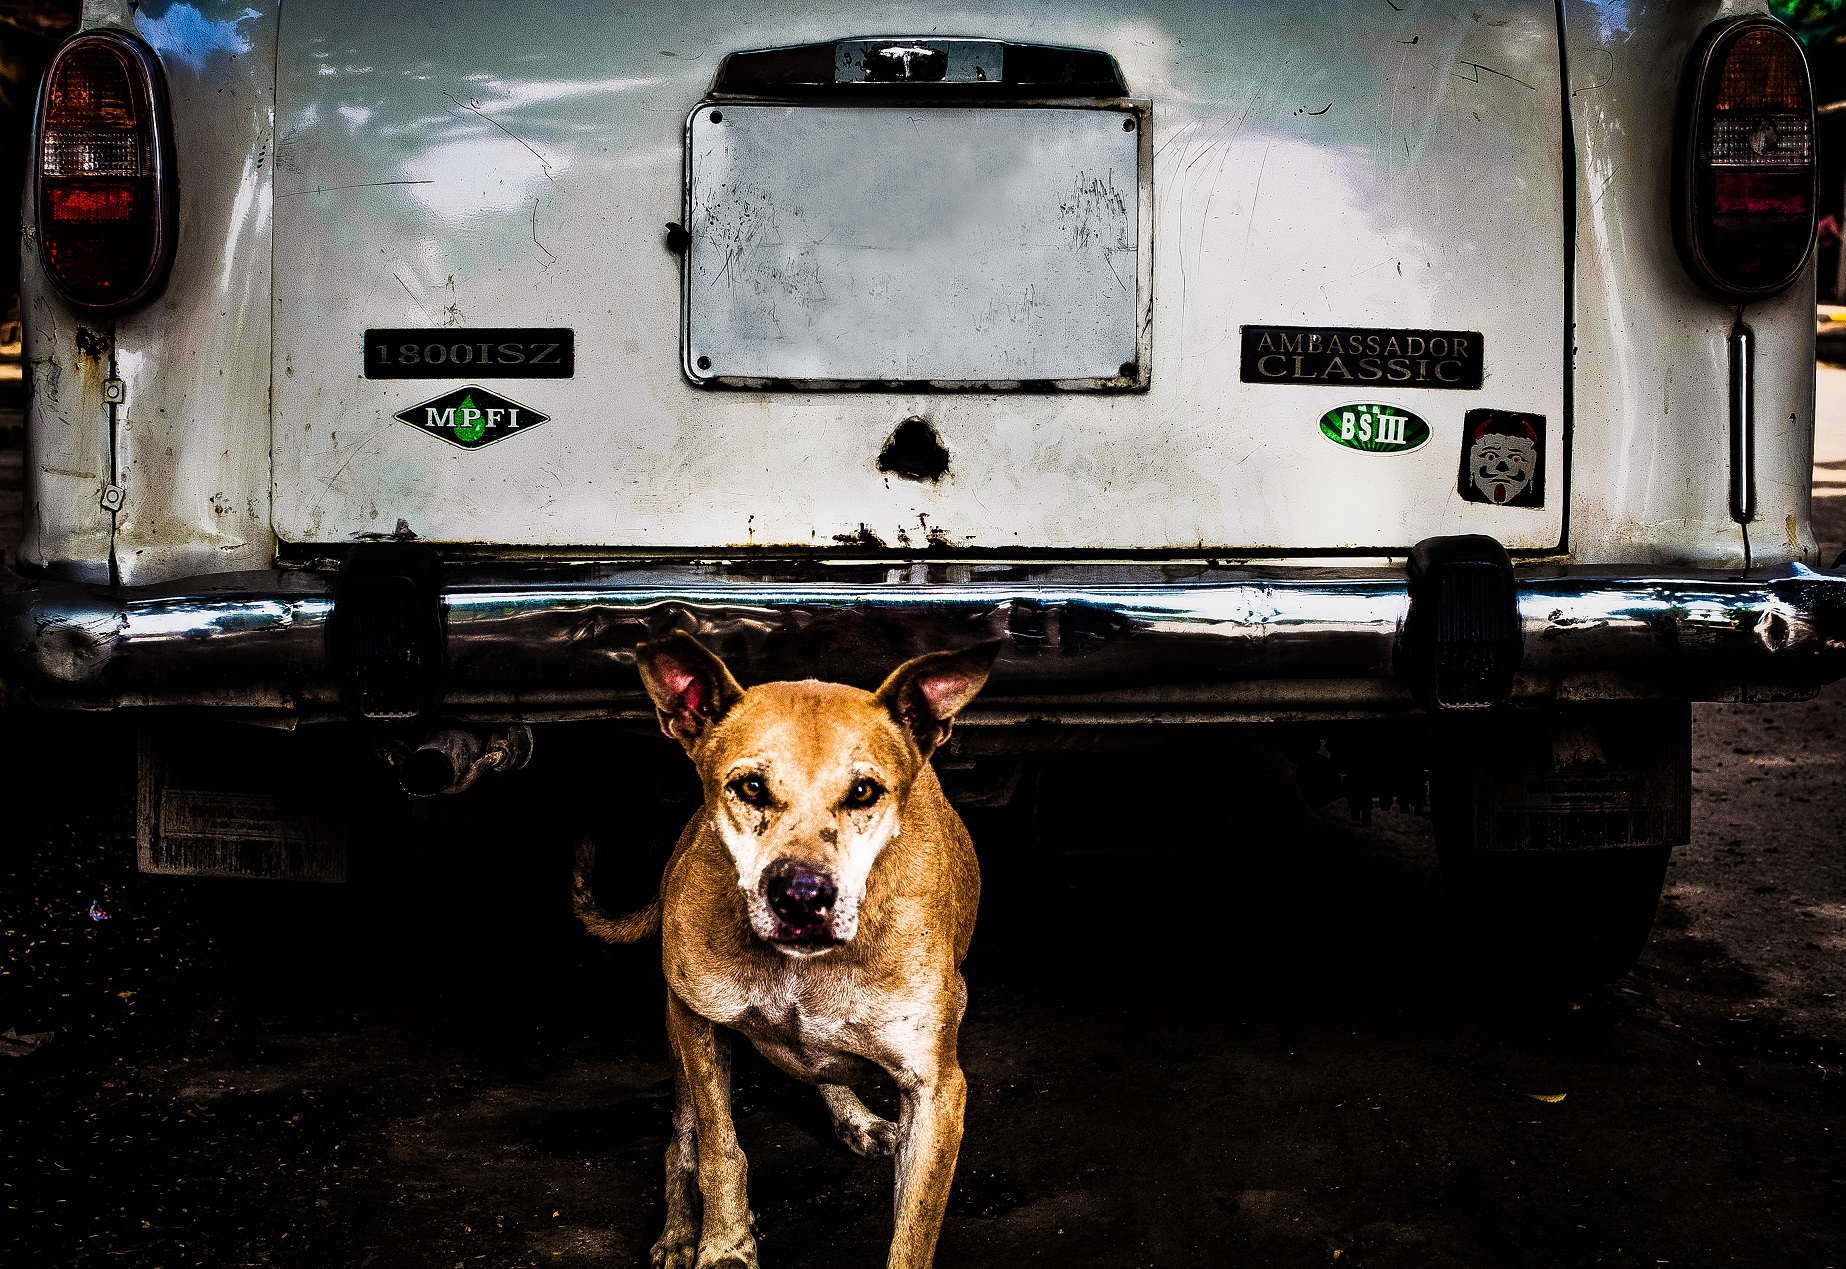 A stray dog crawls out from under a car in New Delhi.